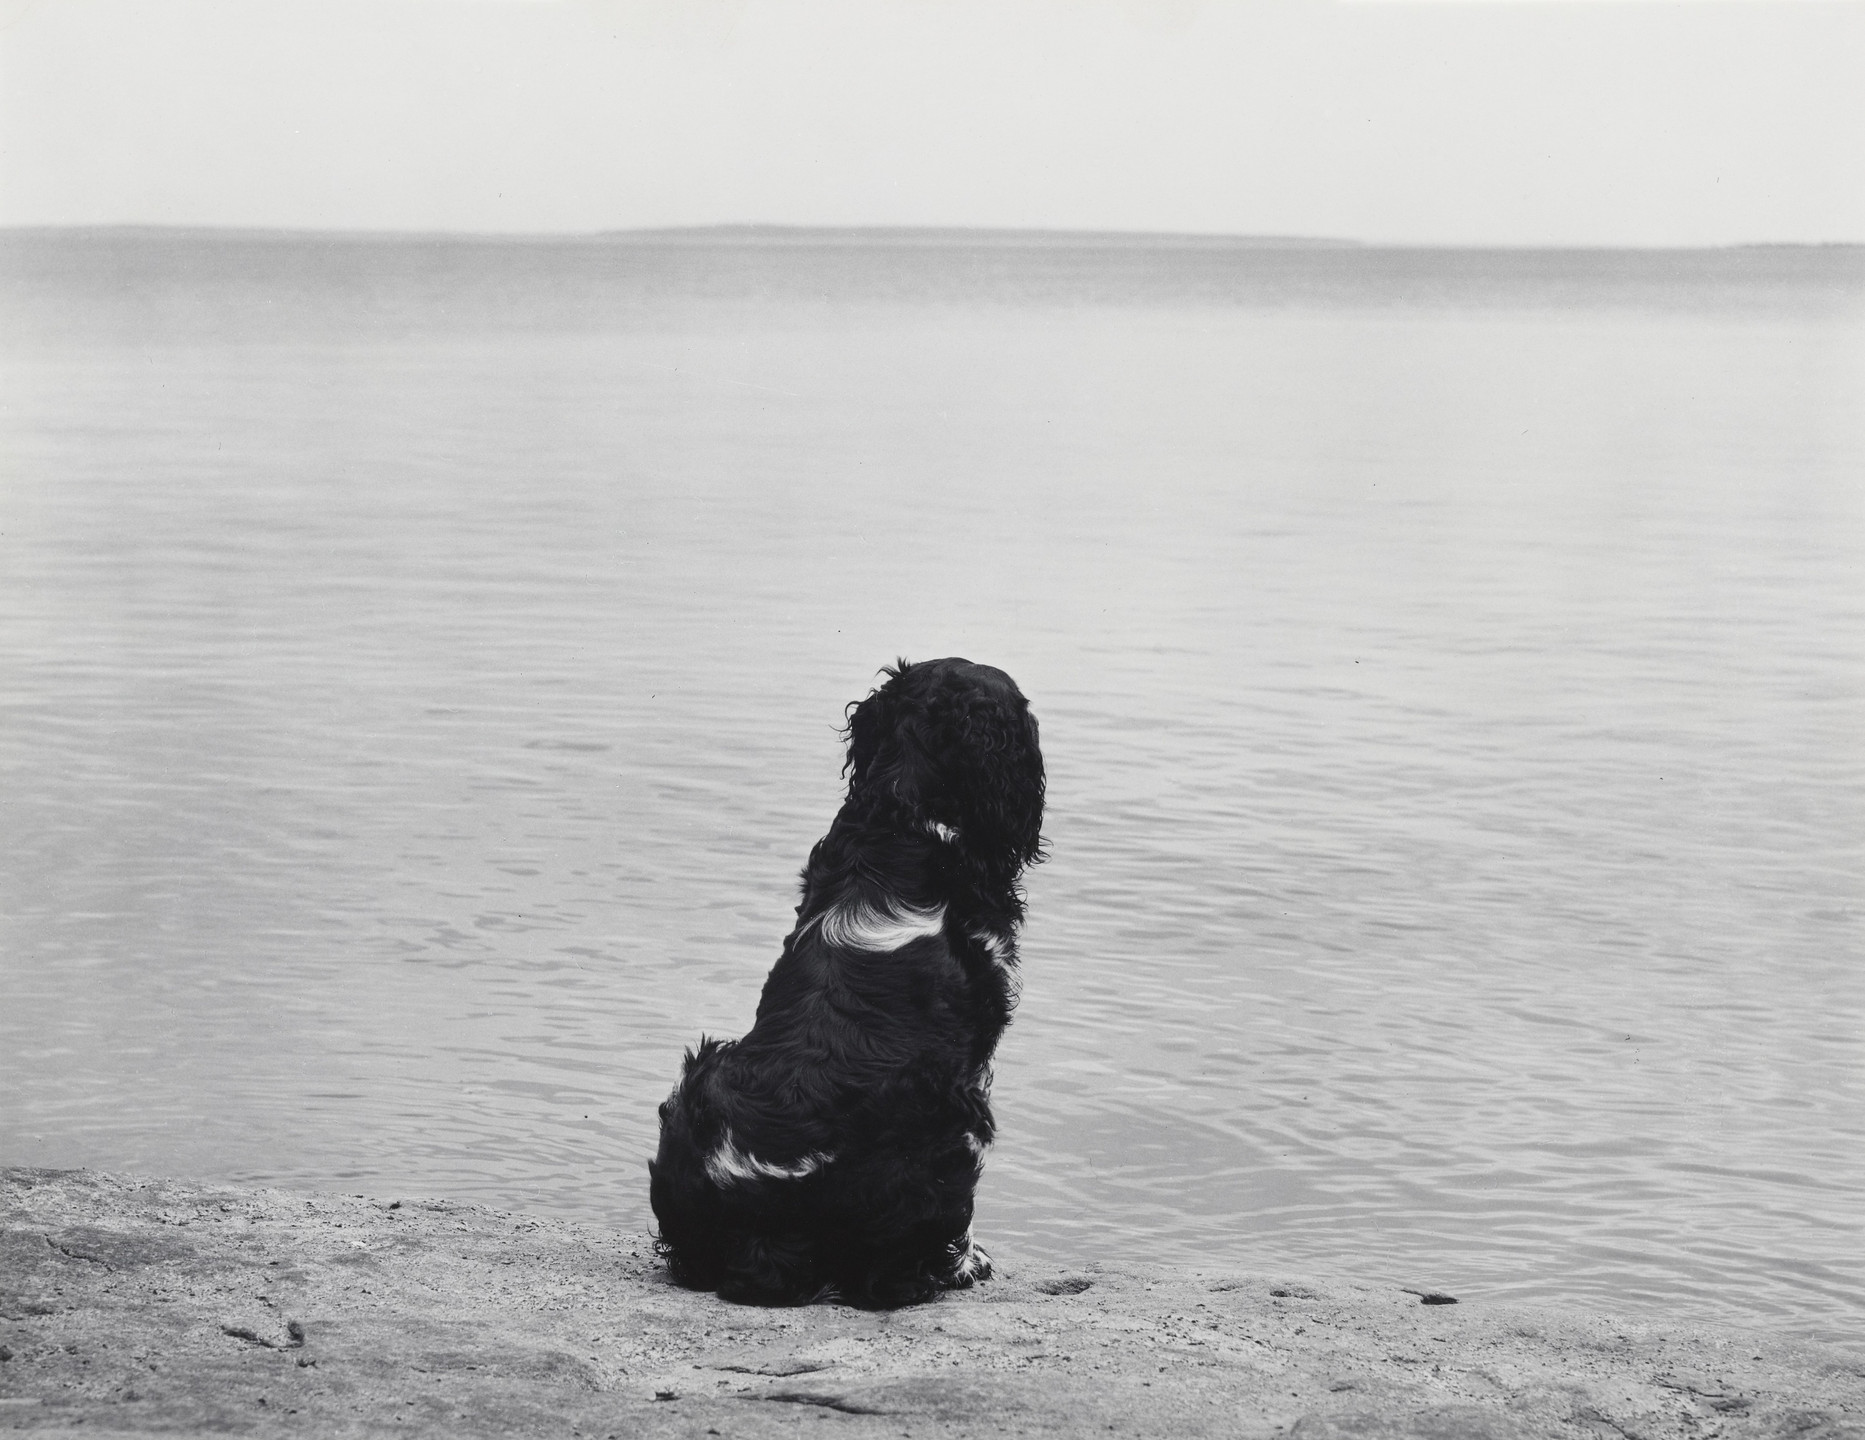 John Szarkowski. Mathew Brady and Lake Superior. 1959